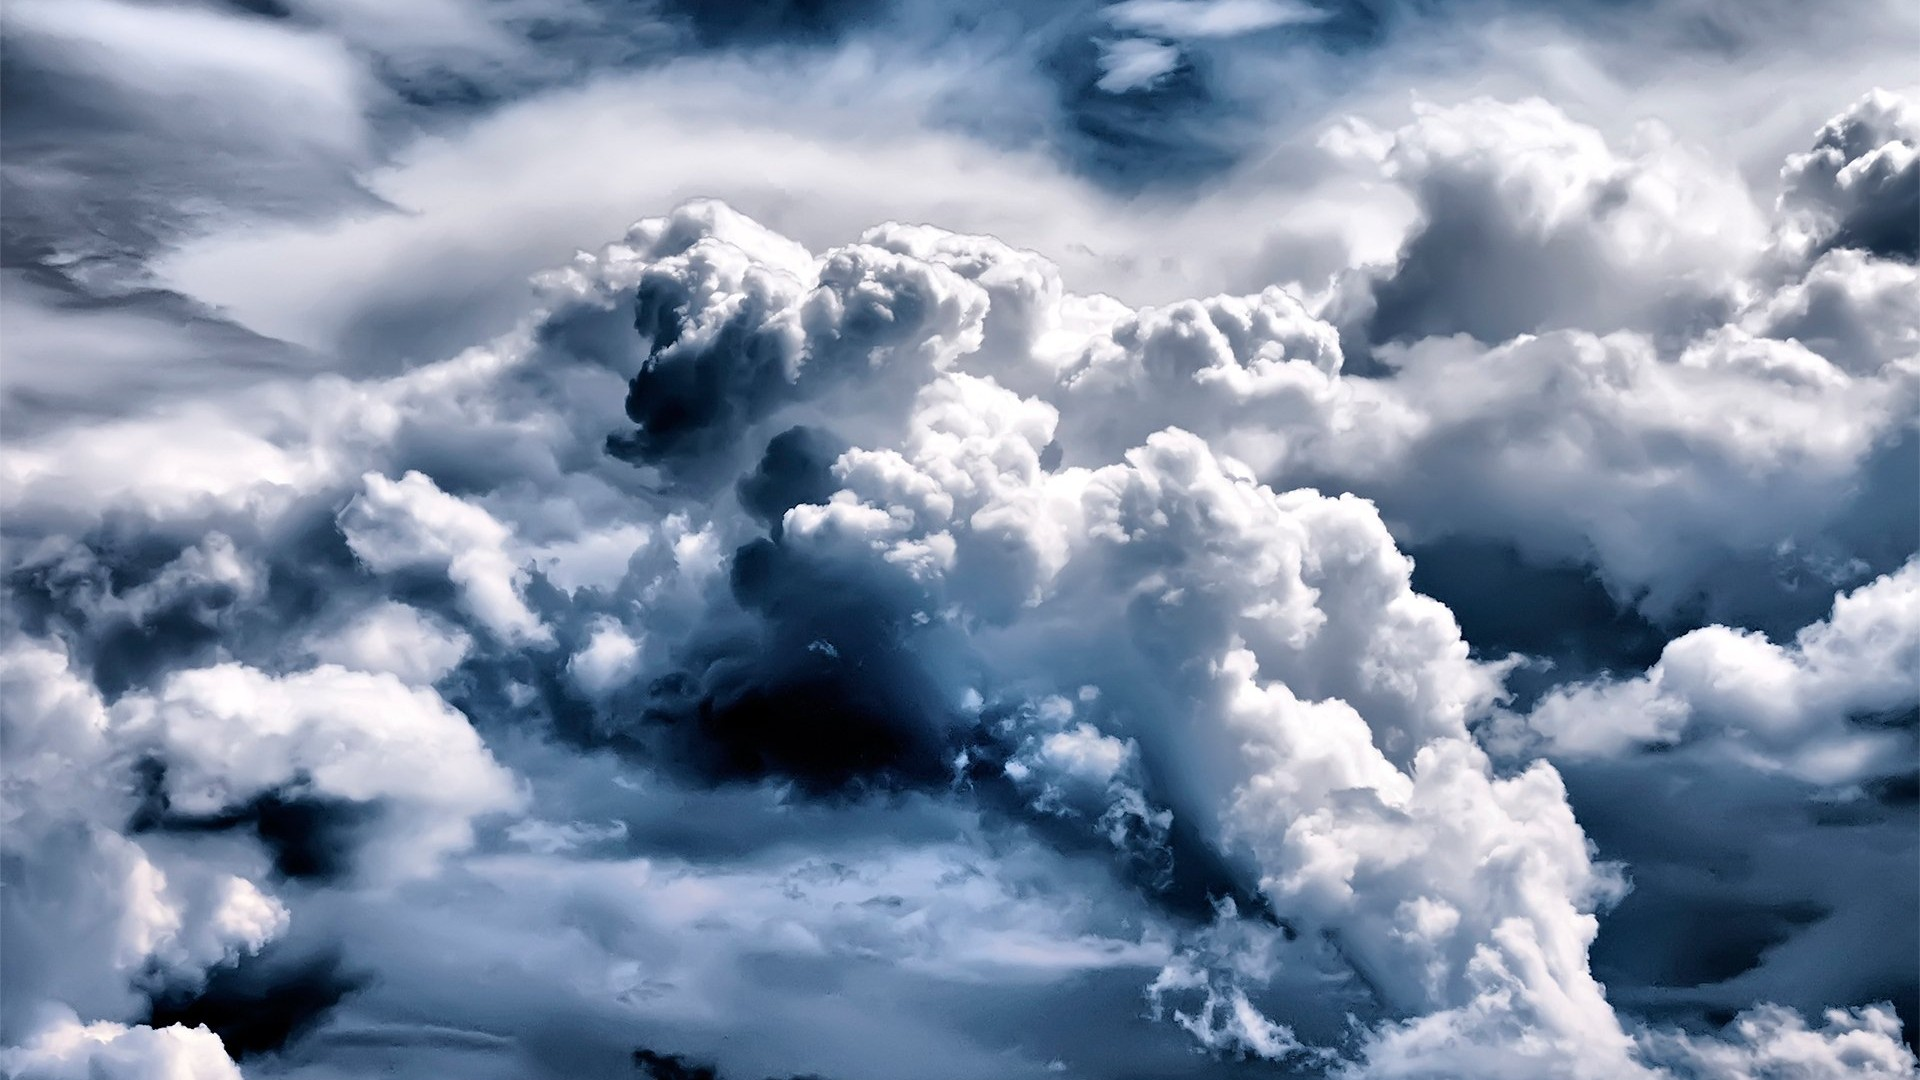 cloud wallpaper nature